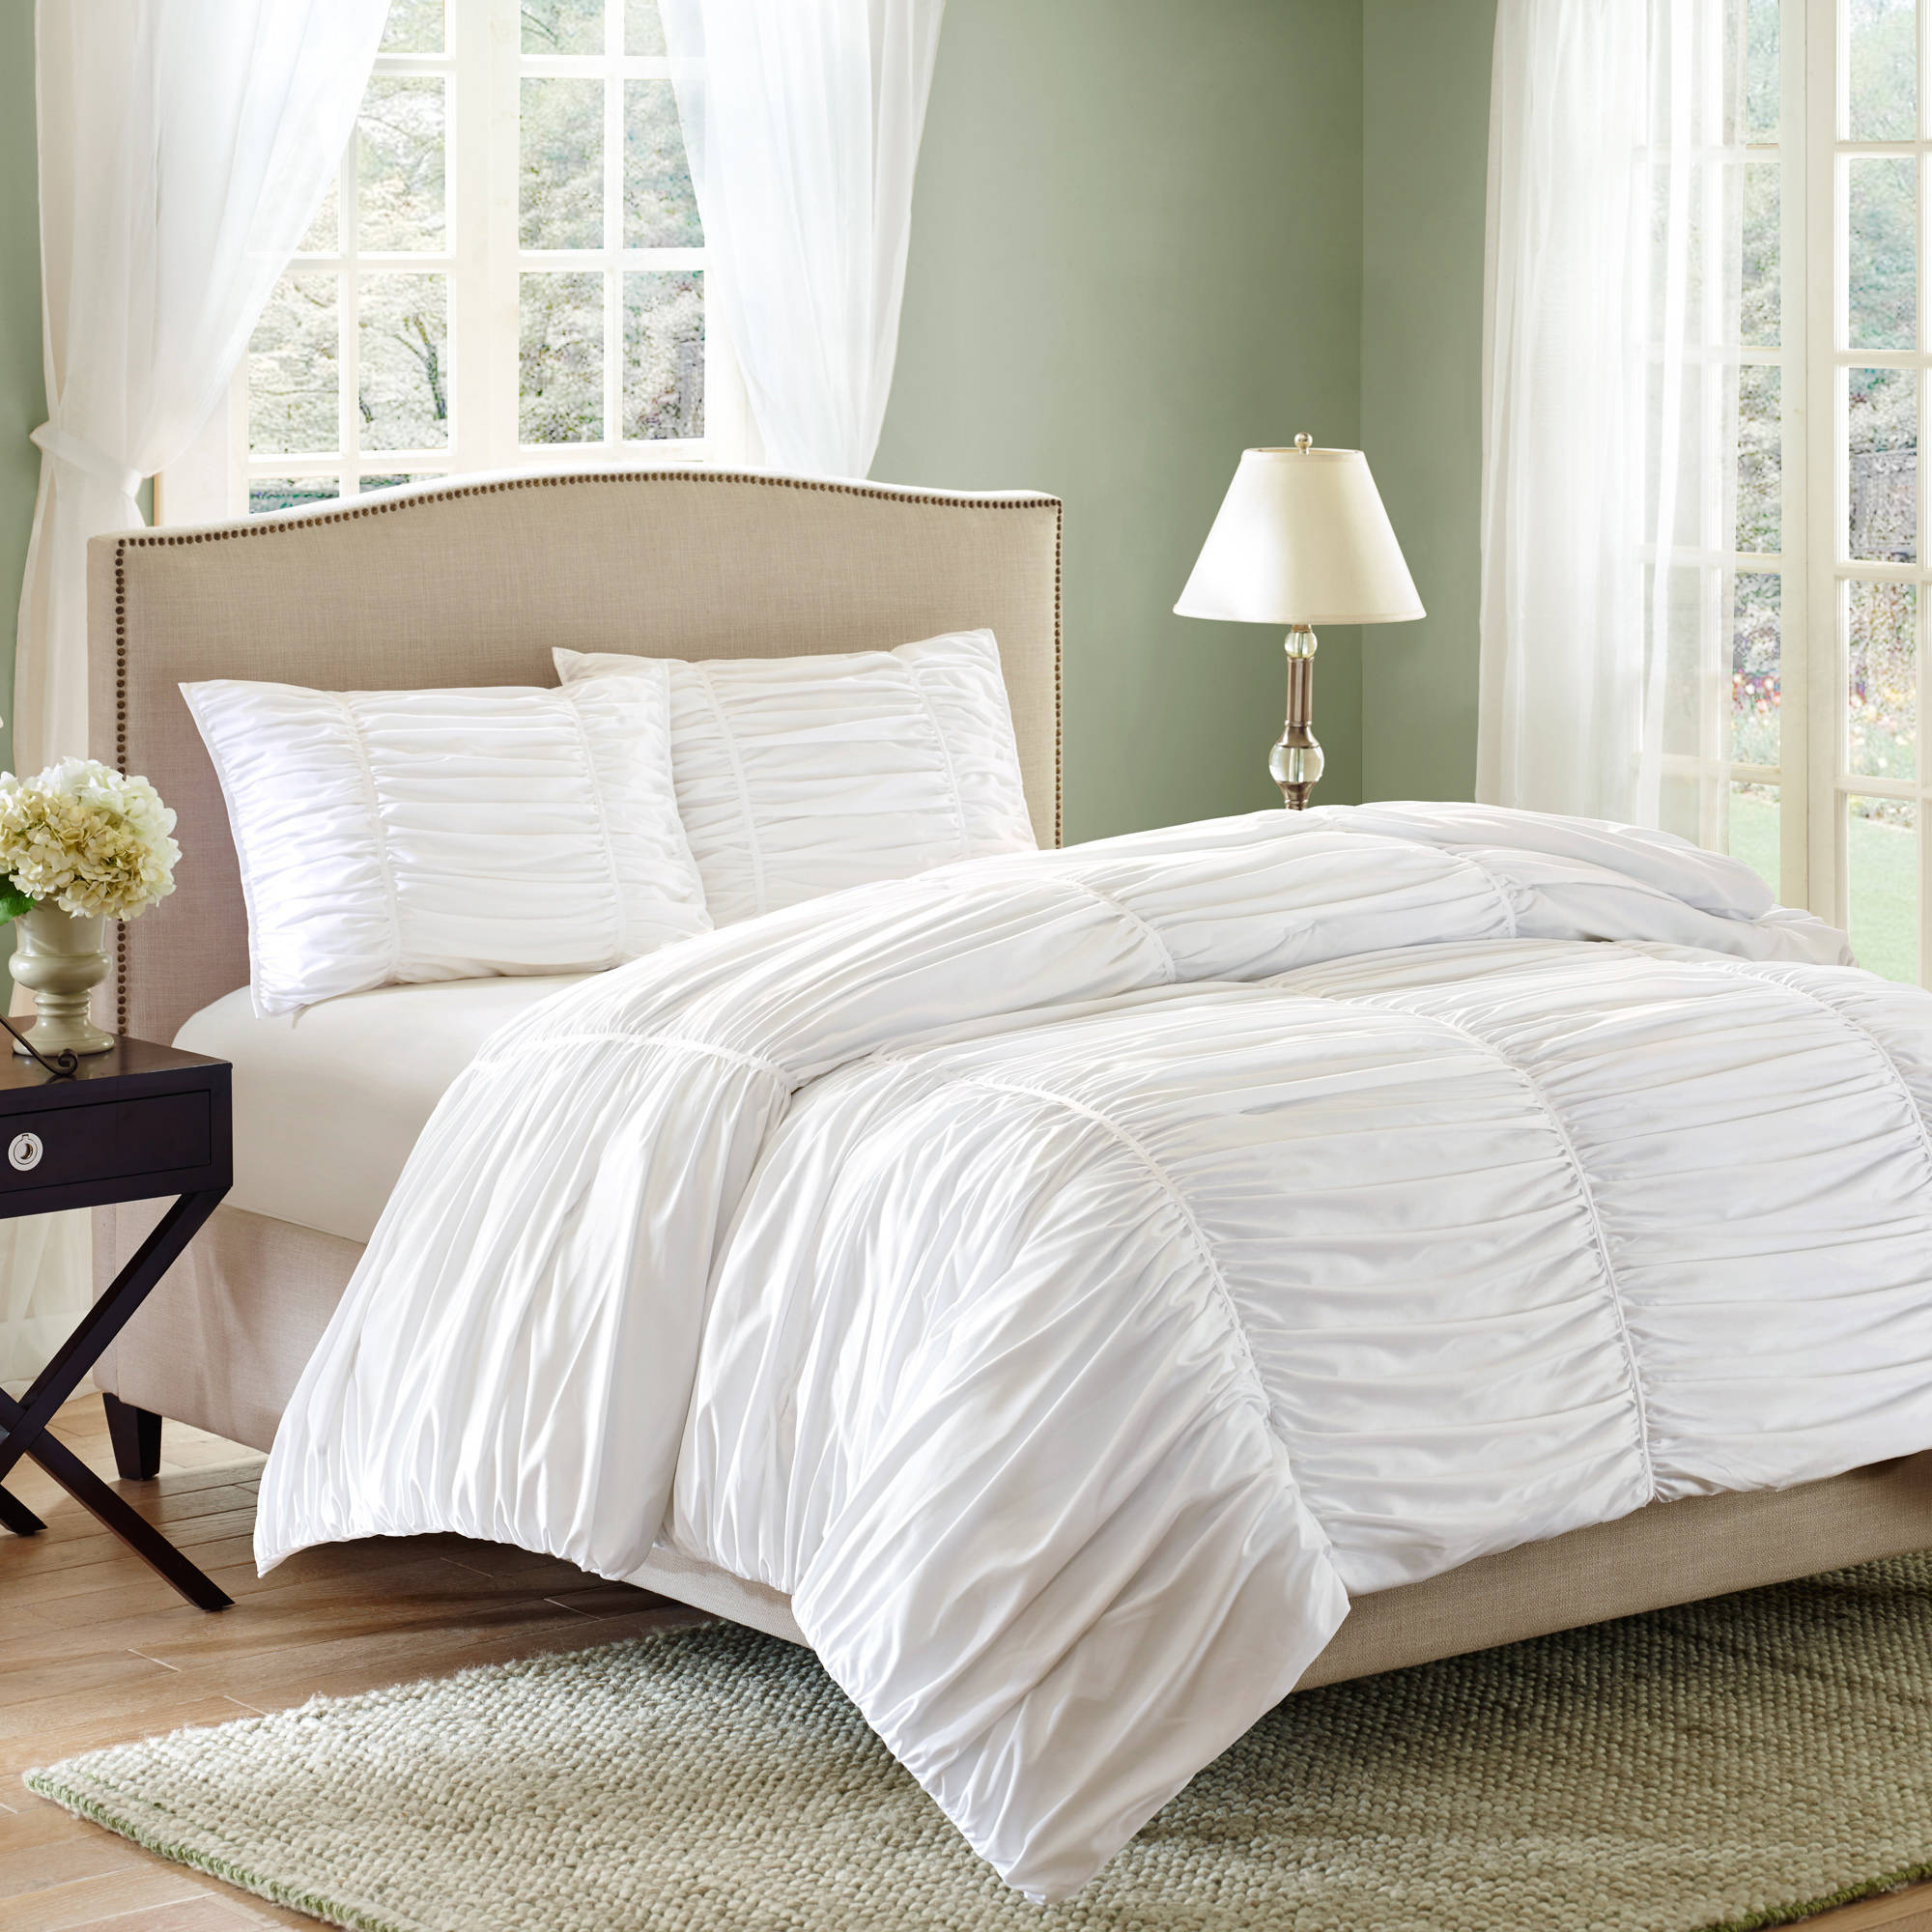 Better Homes and Gardens Ruching 3-Piece Comforter Set